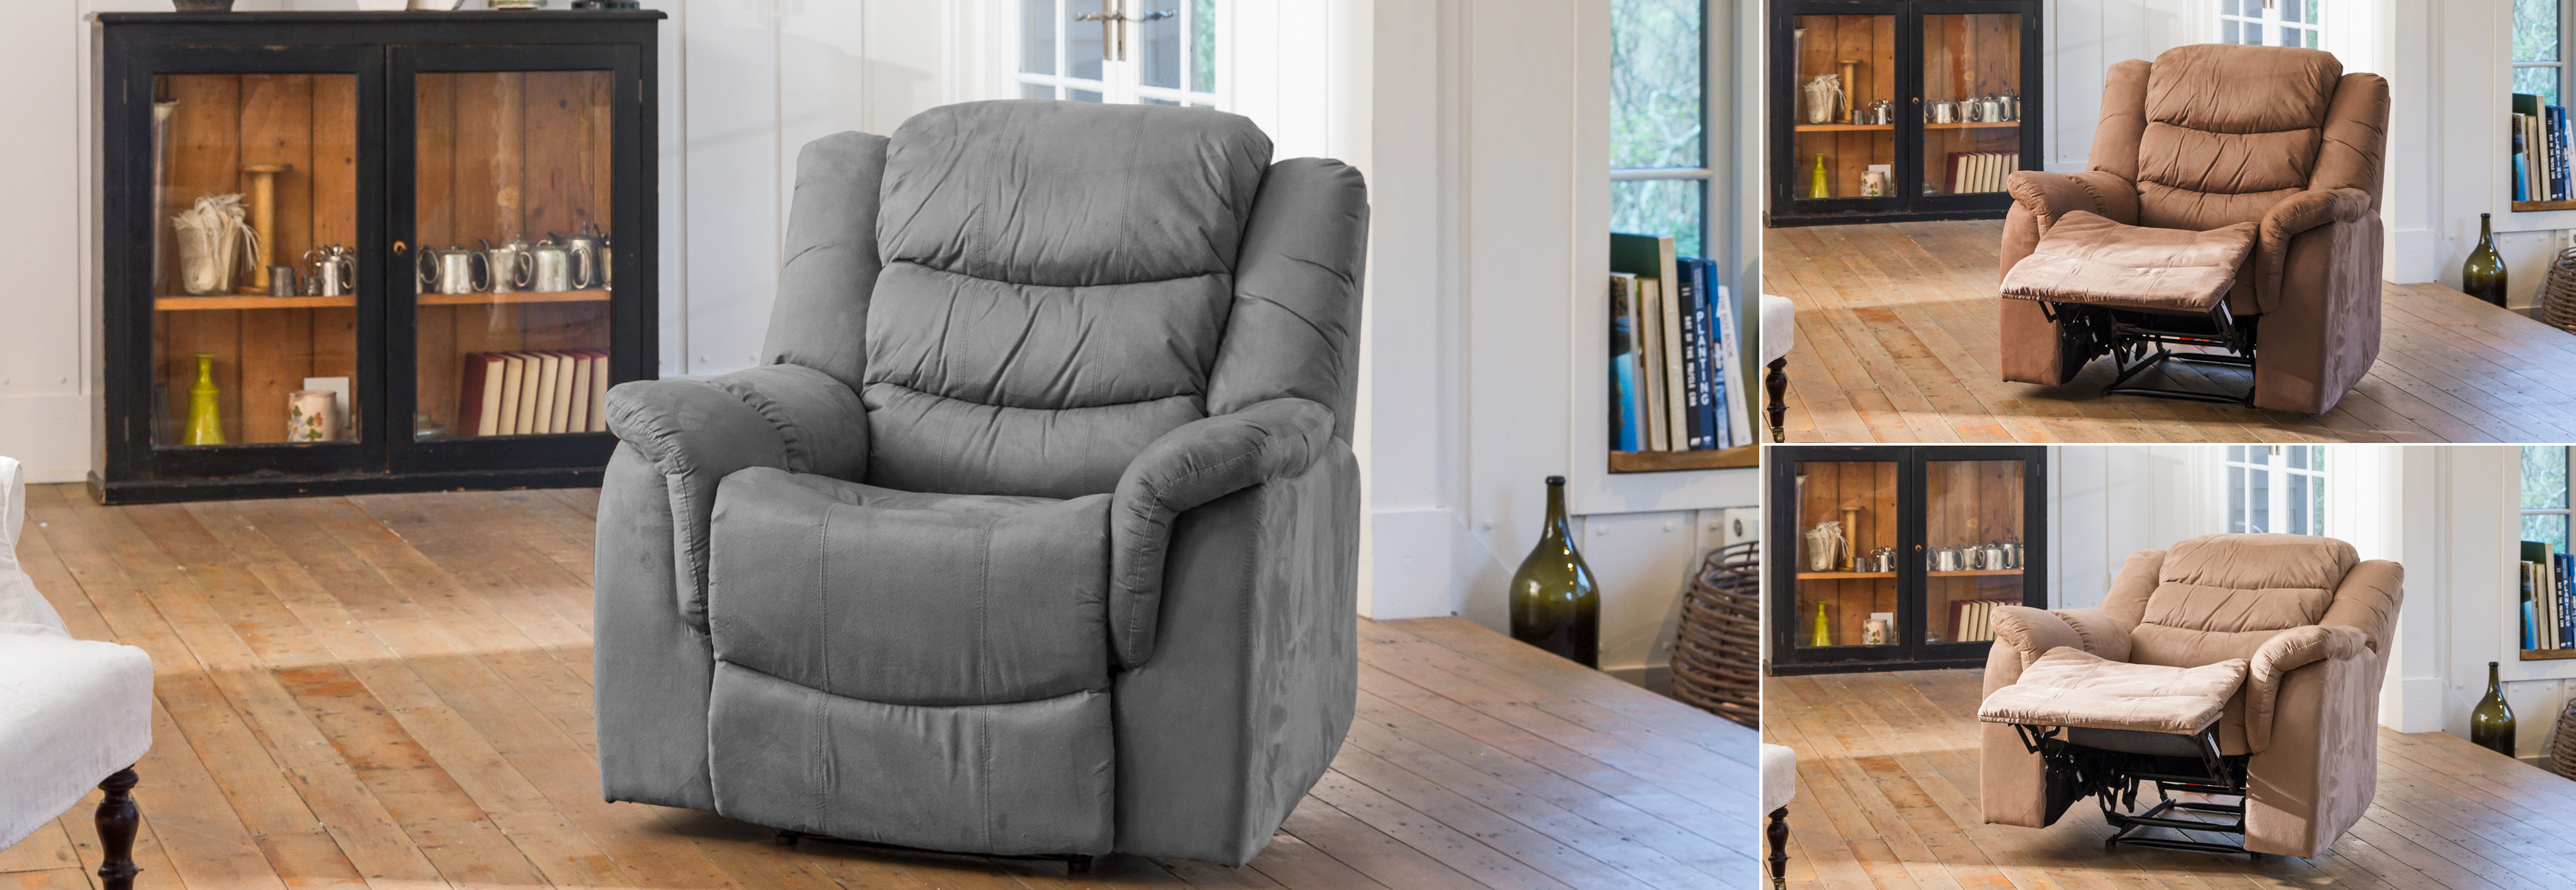 Asquith Electric Recliner charcoal